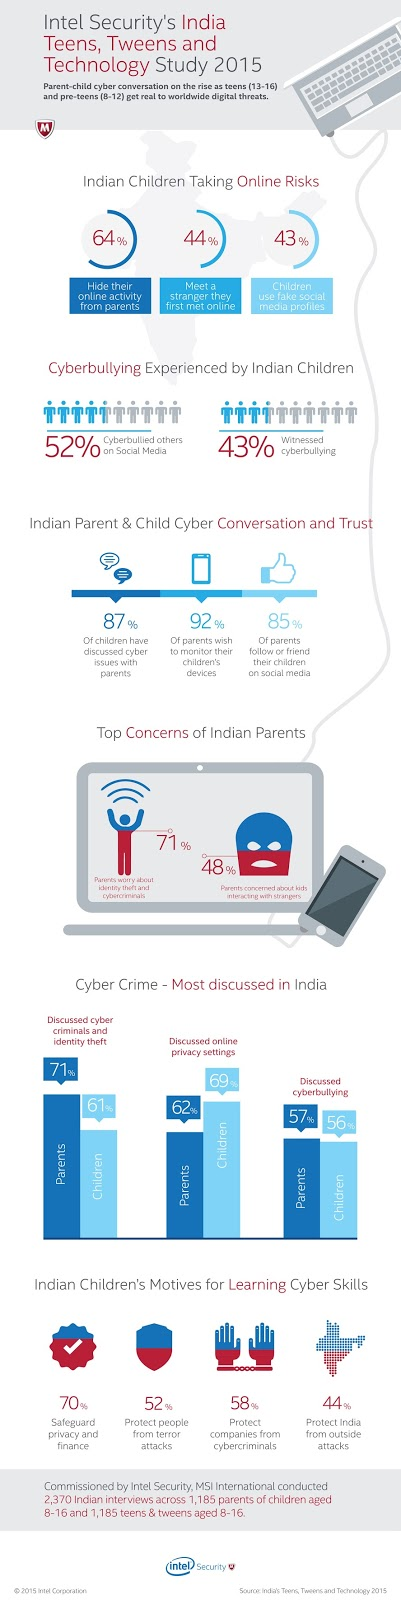 Intel Security Study reveals in 2015 edition of Teens, Tweens and Technology Survey that almost half of Indian children admit to meeting or wanting to meet a stranger they first met online